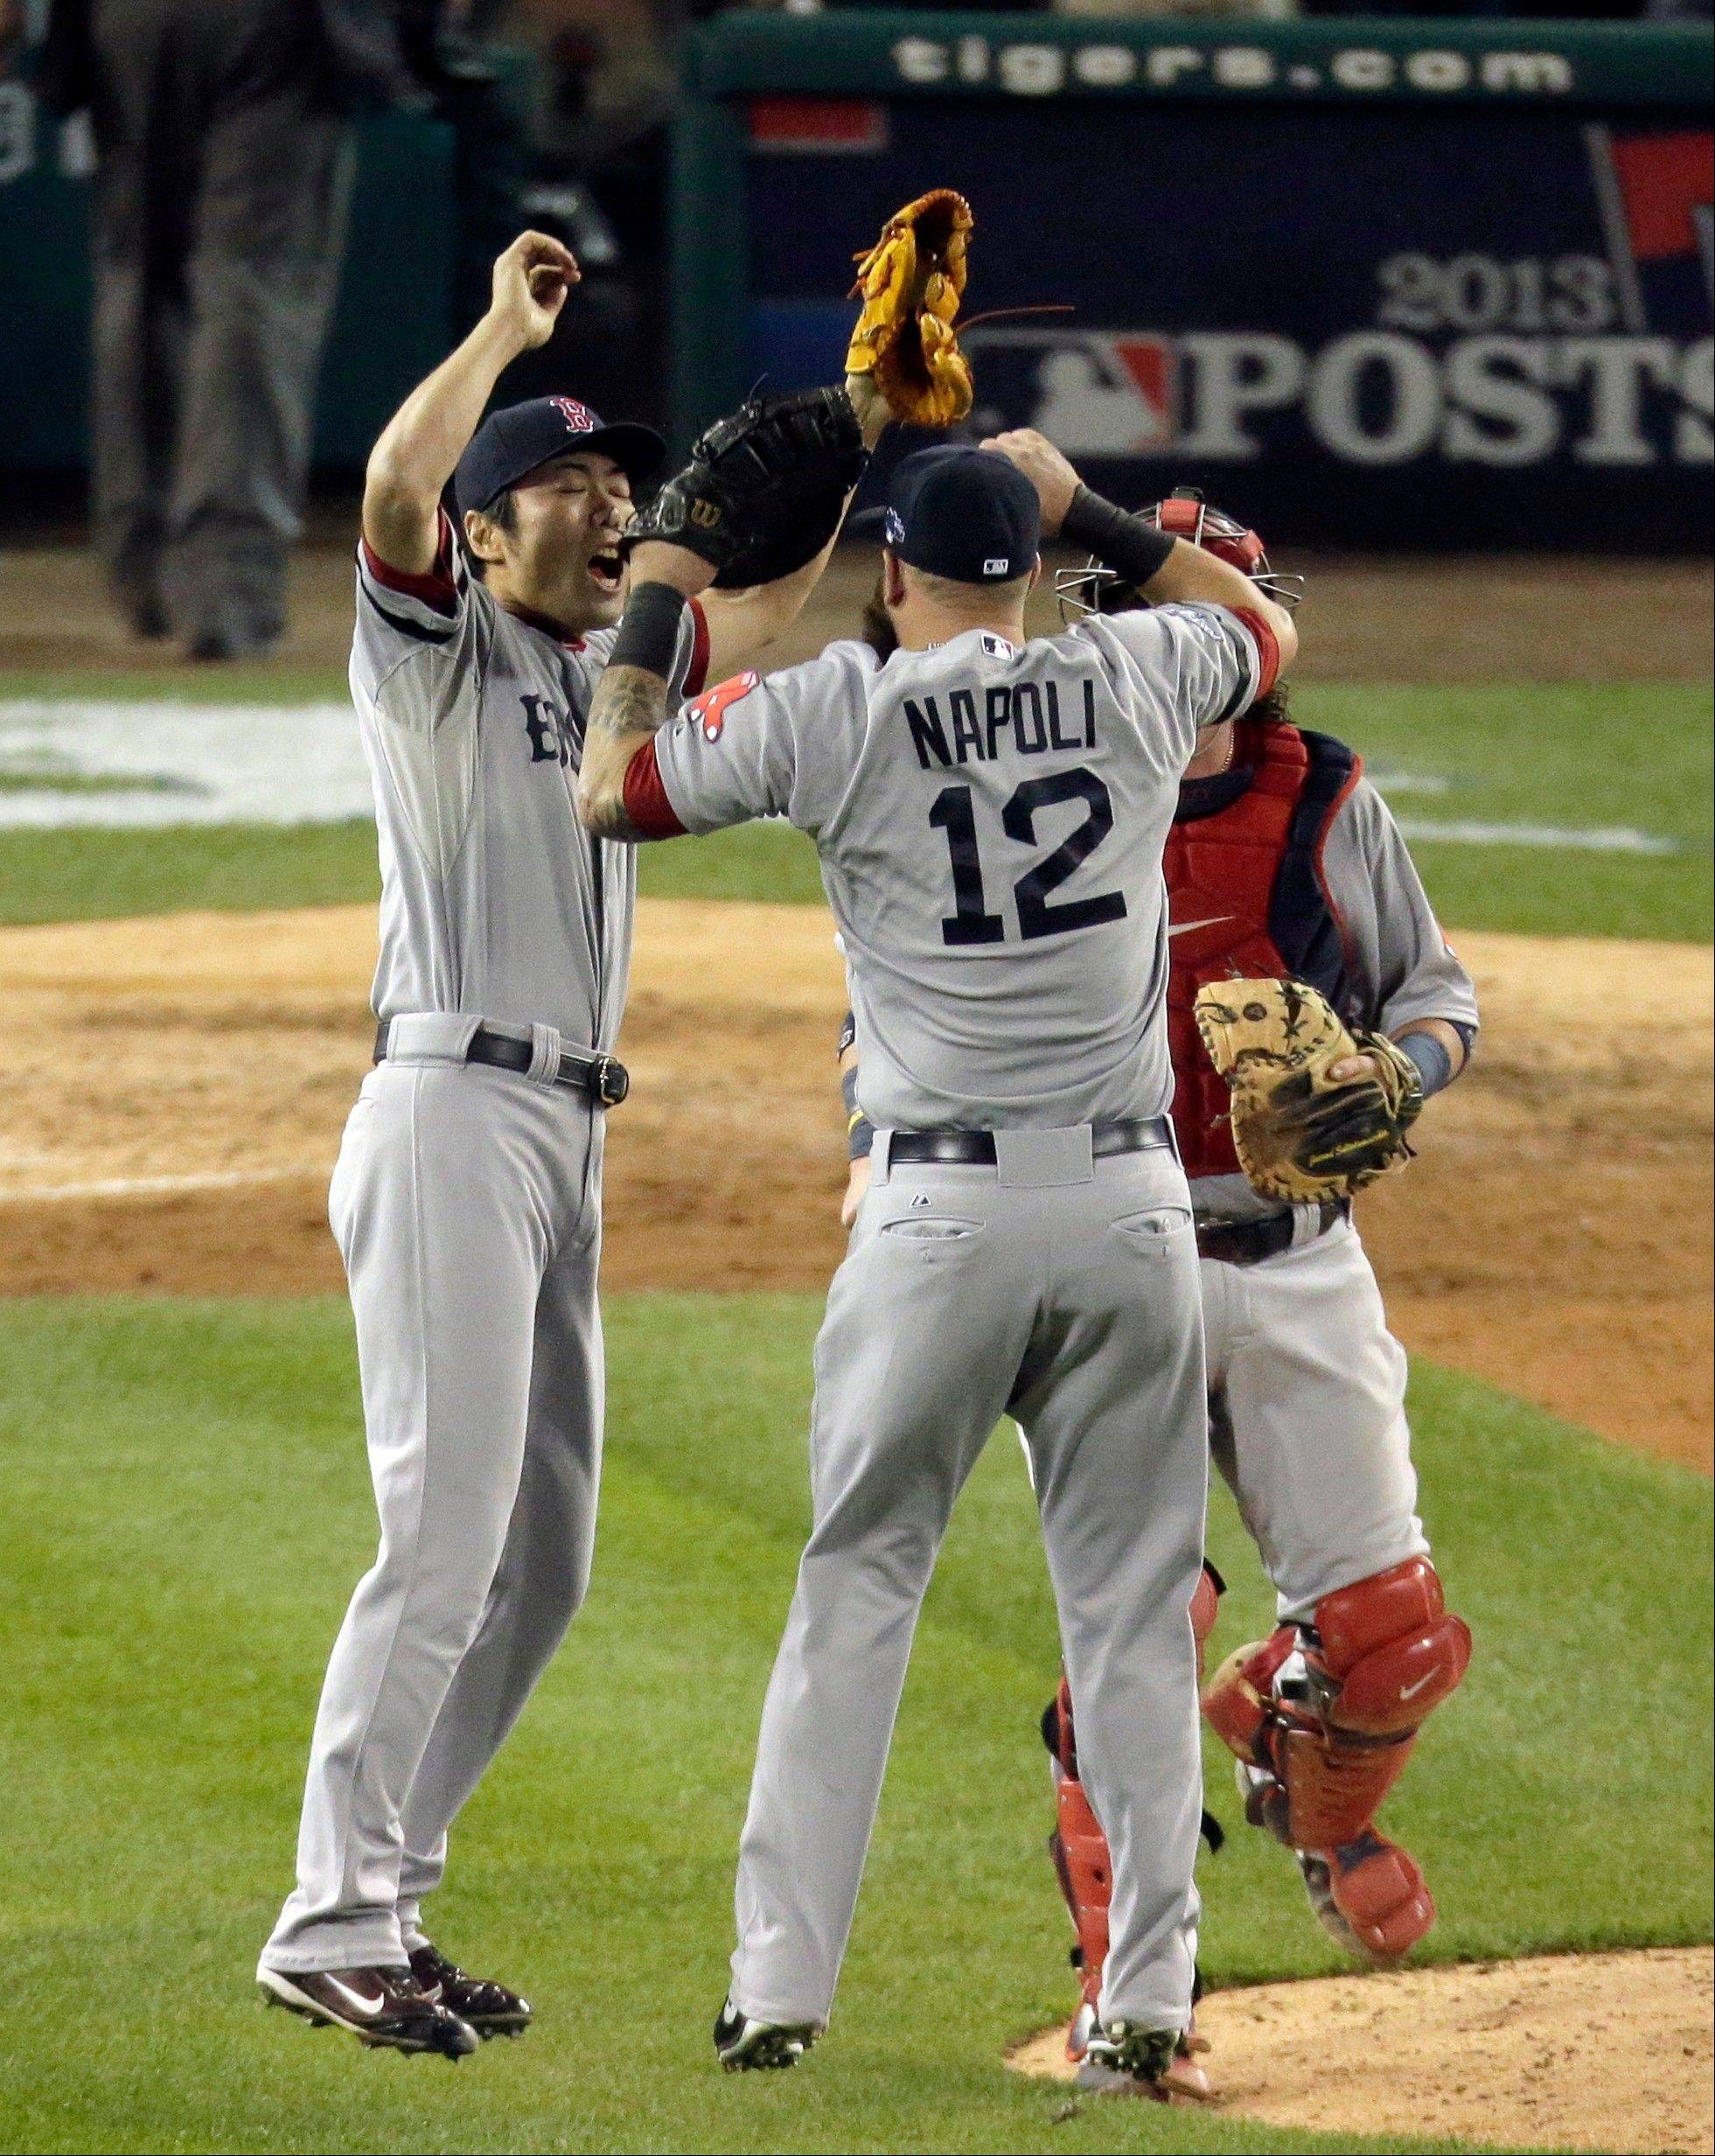 Images: Game 3 of the ALCS